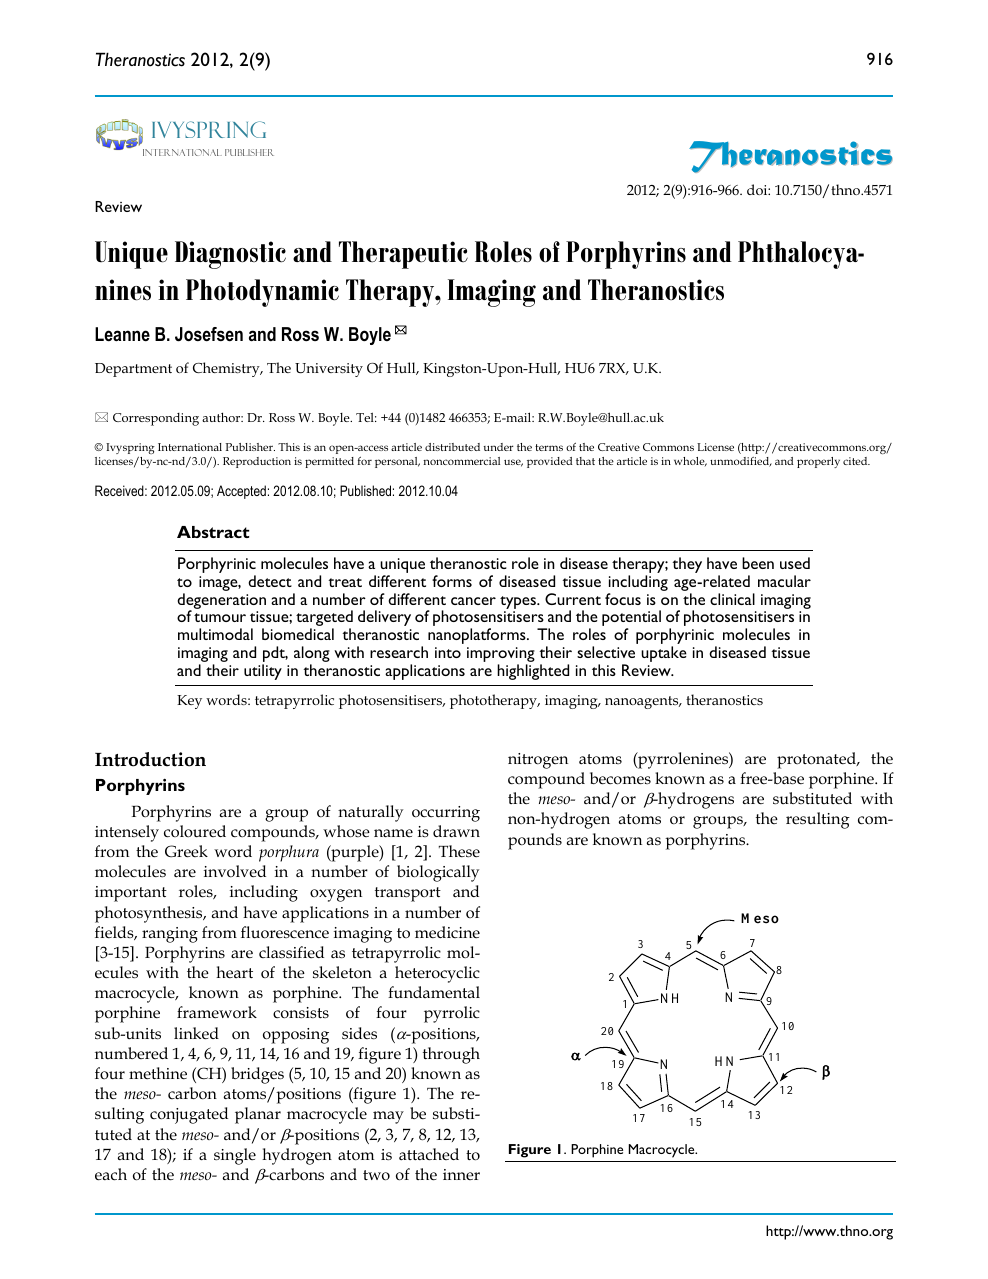 Unique Diagnostic and Therapeutic Roles of Porphyrins and